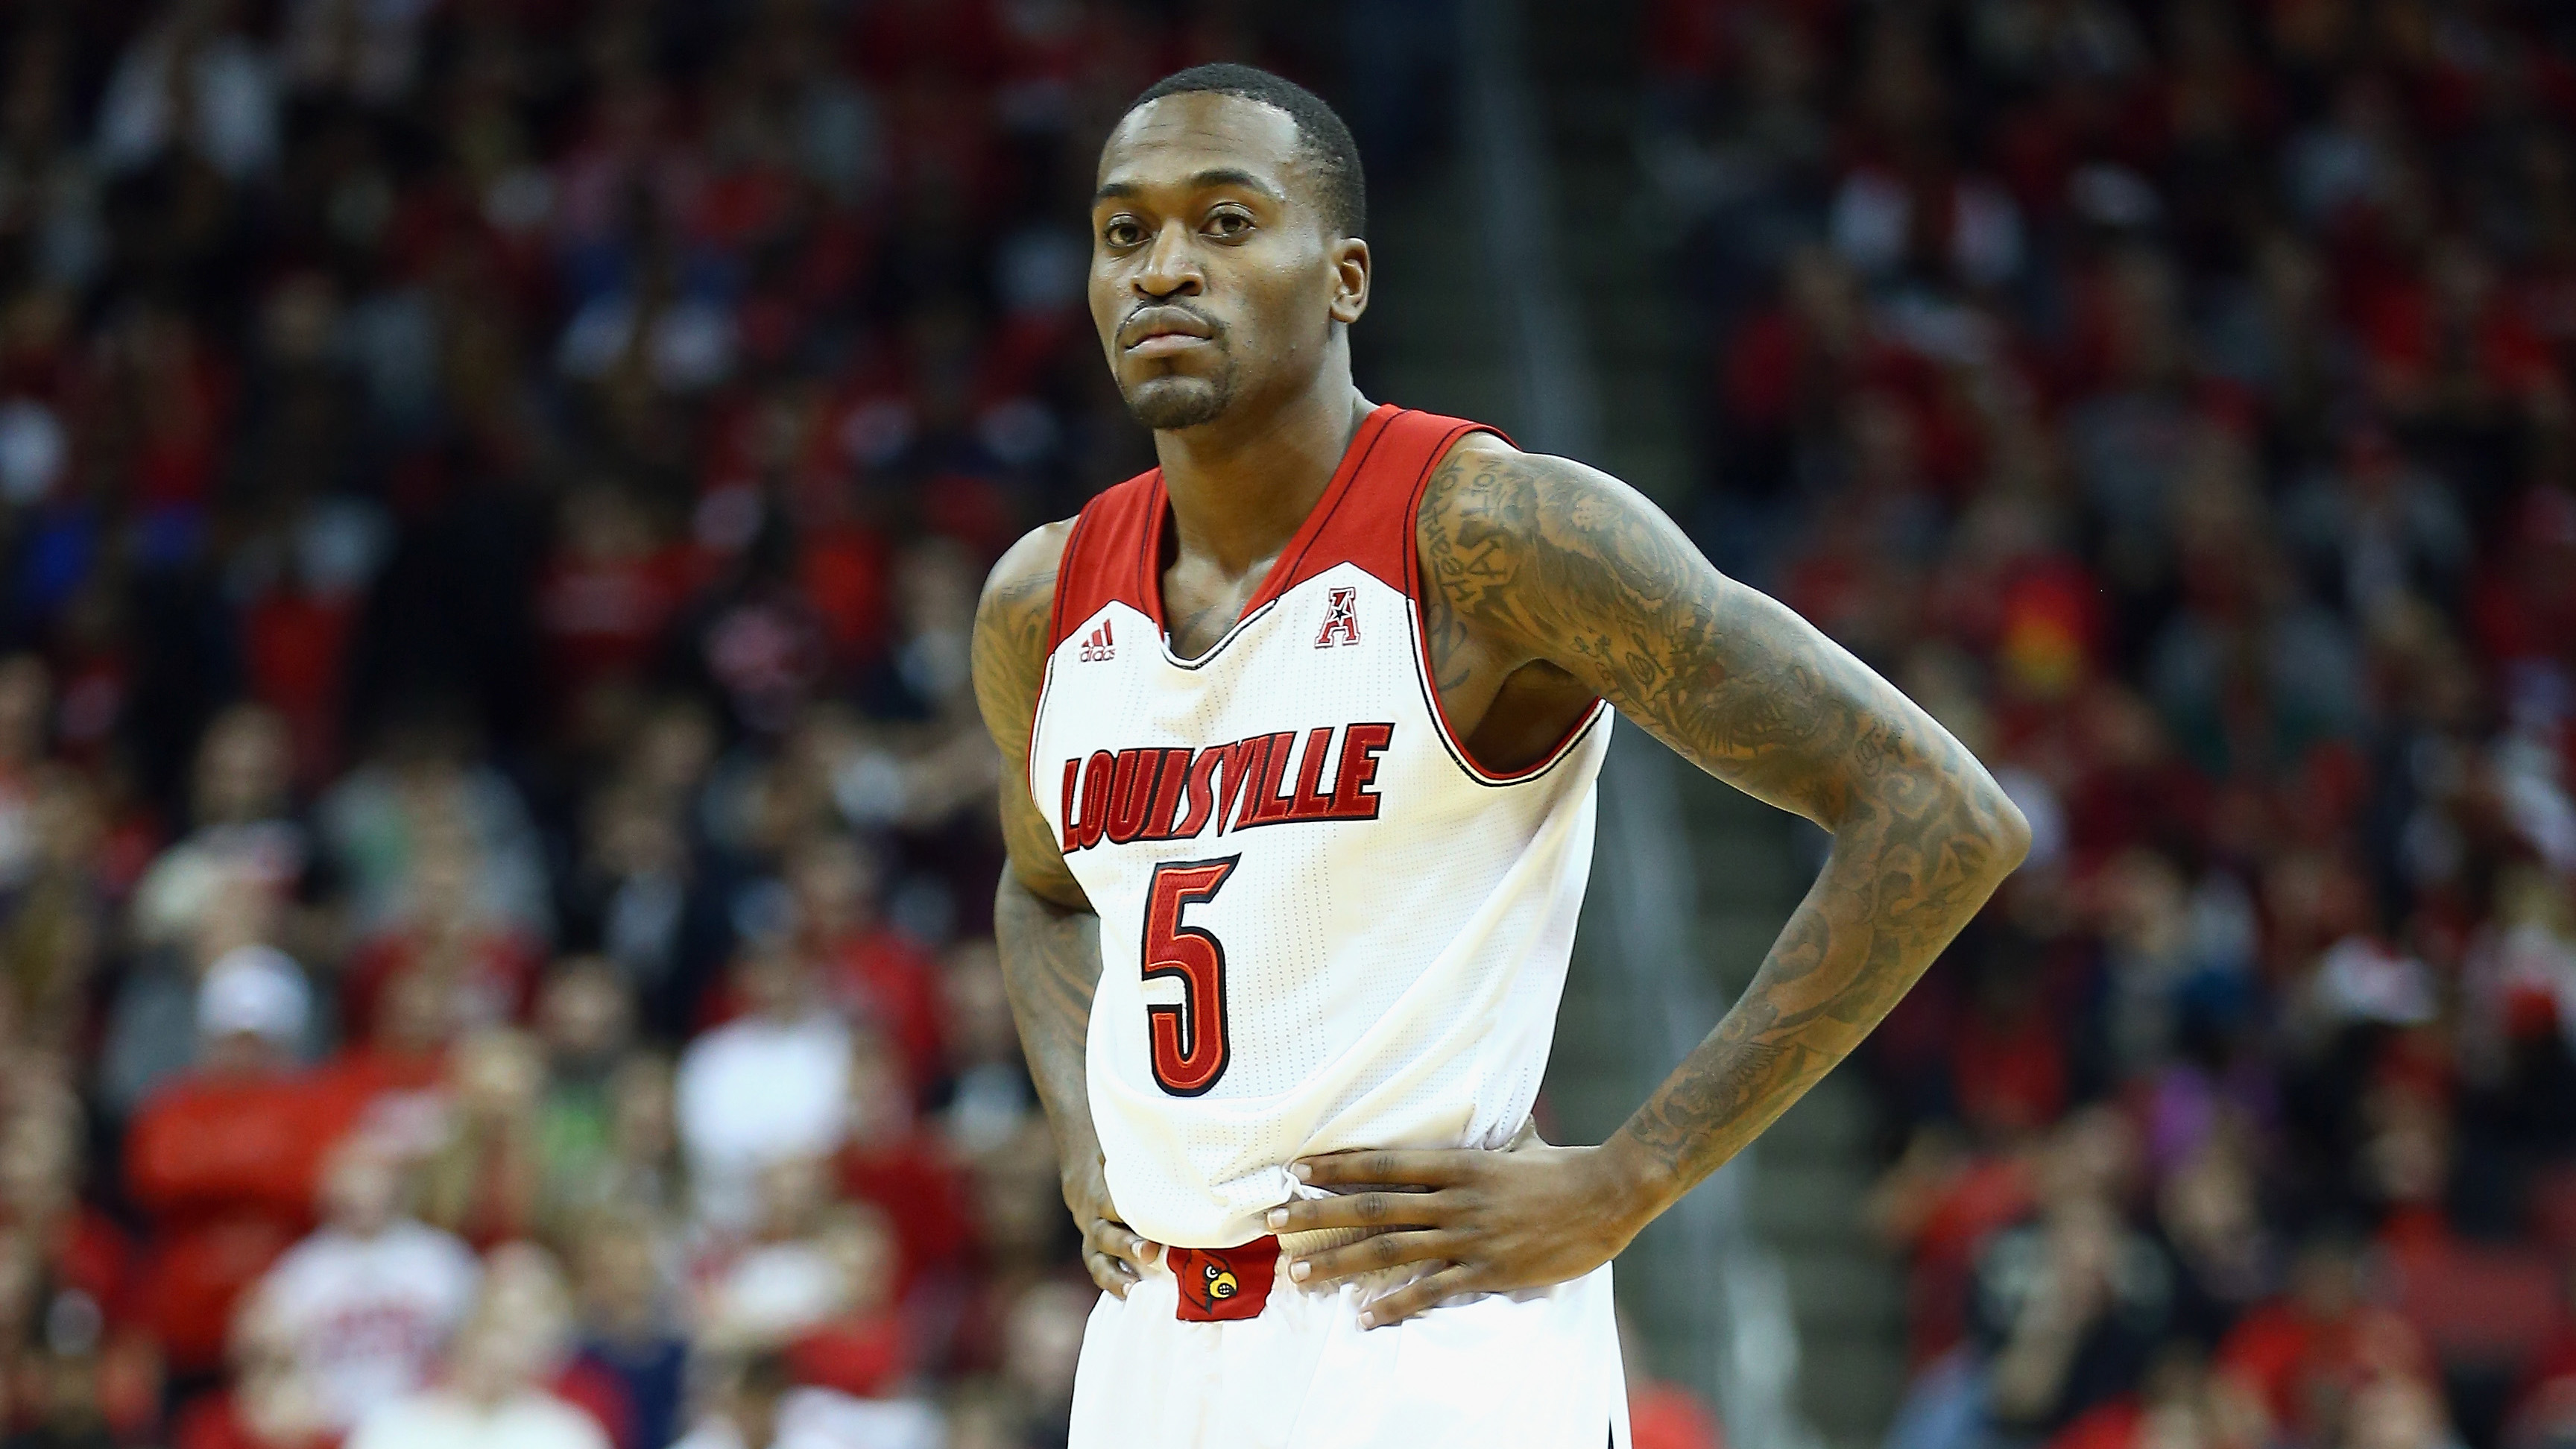 kevin-ware-ftr-louisville-getty